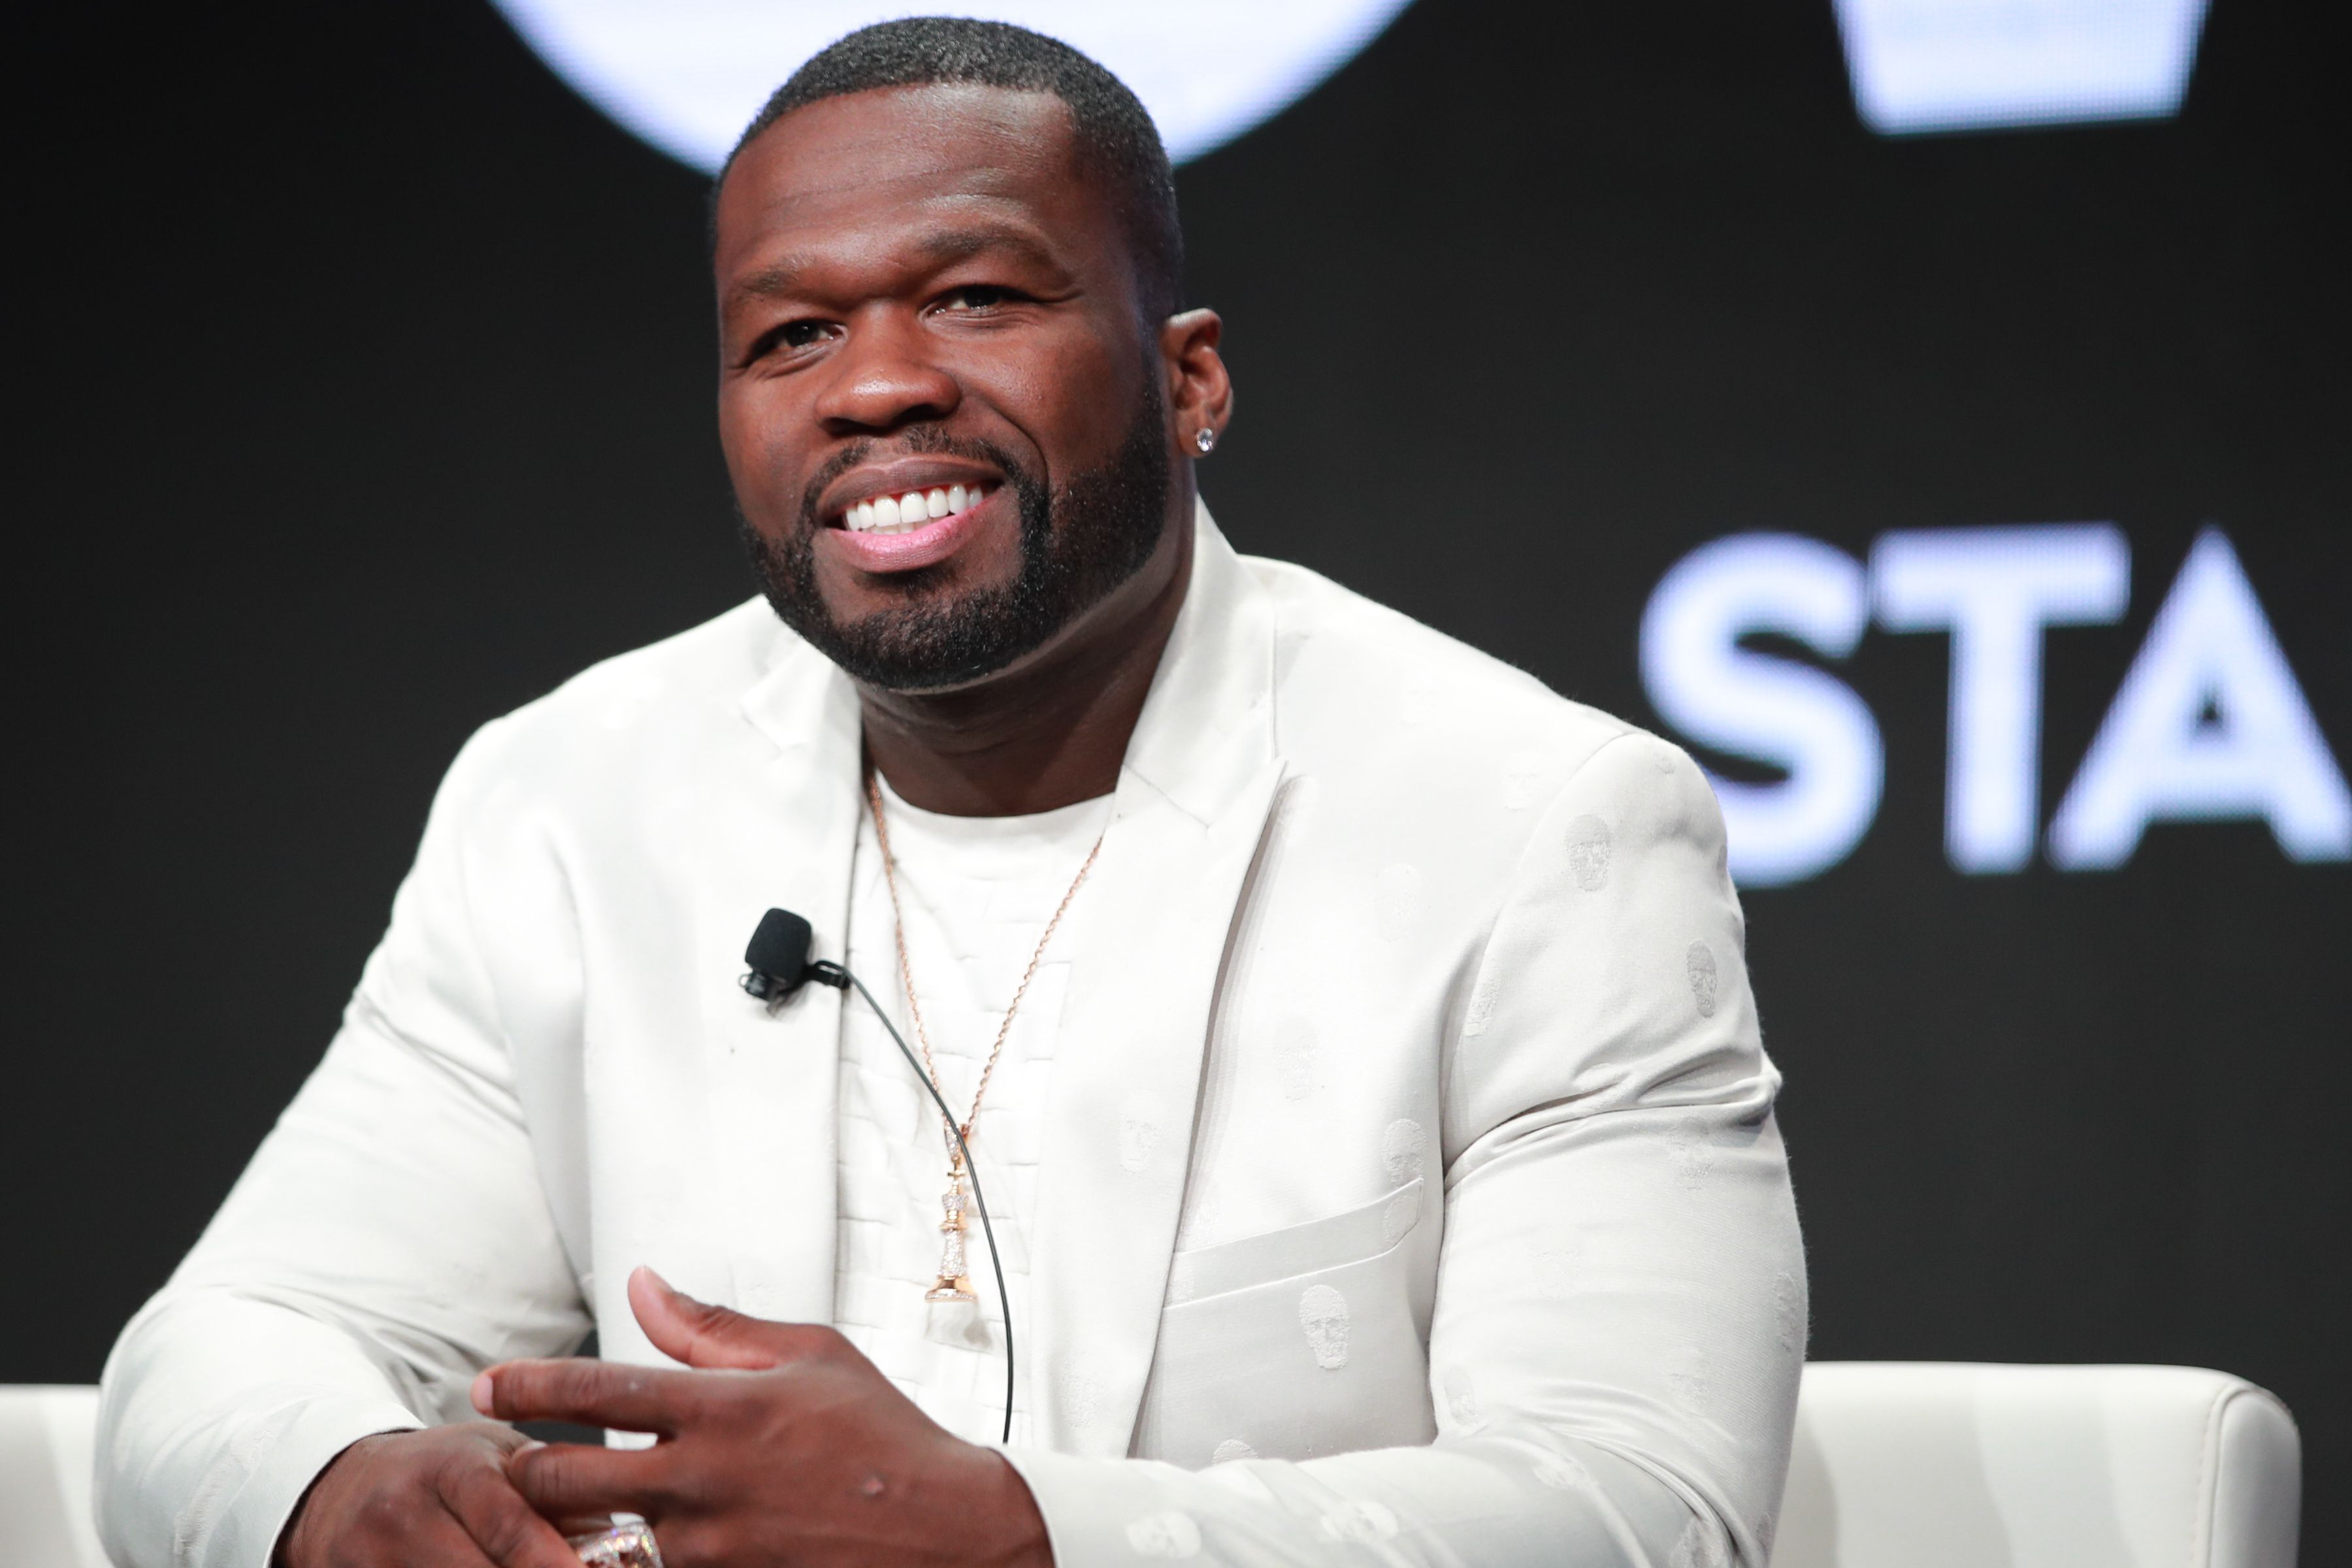 50 Cent Video Porno 50 cent vows to give up on petty public feuds, learns